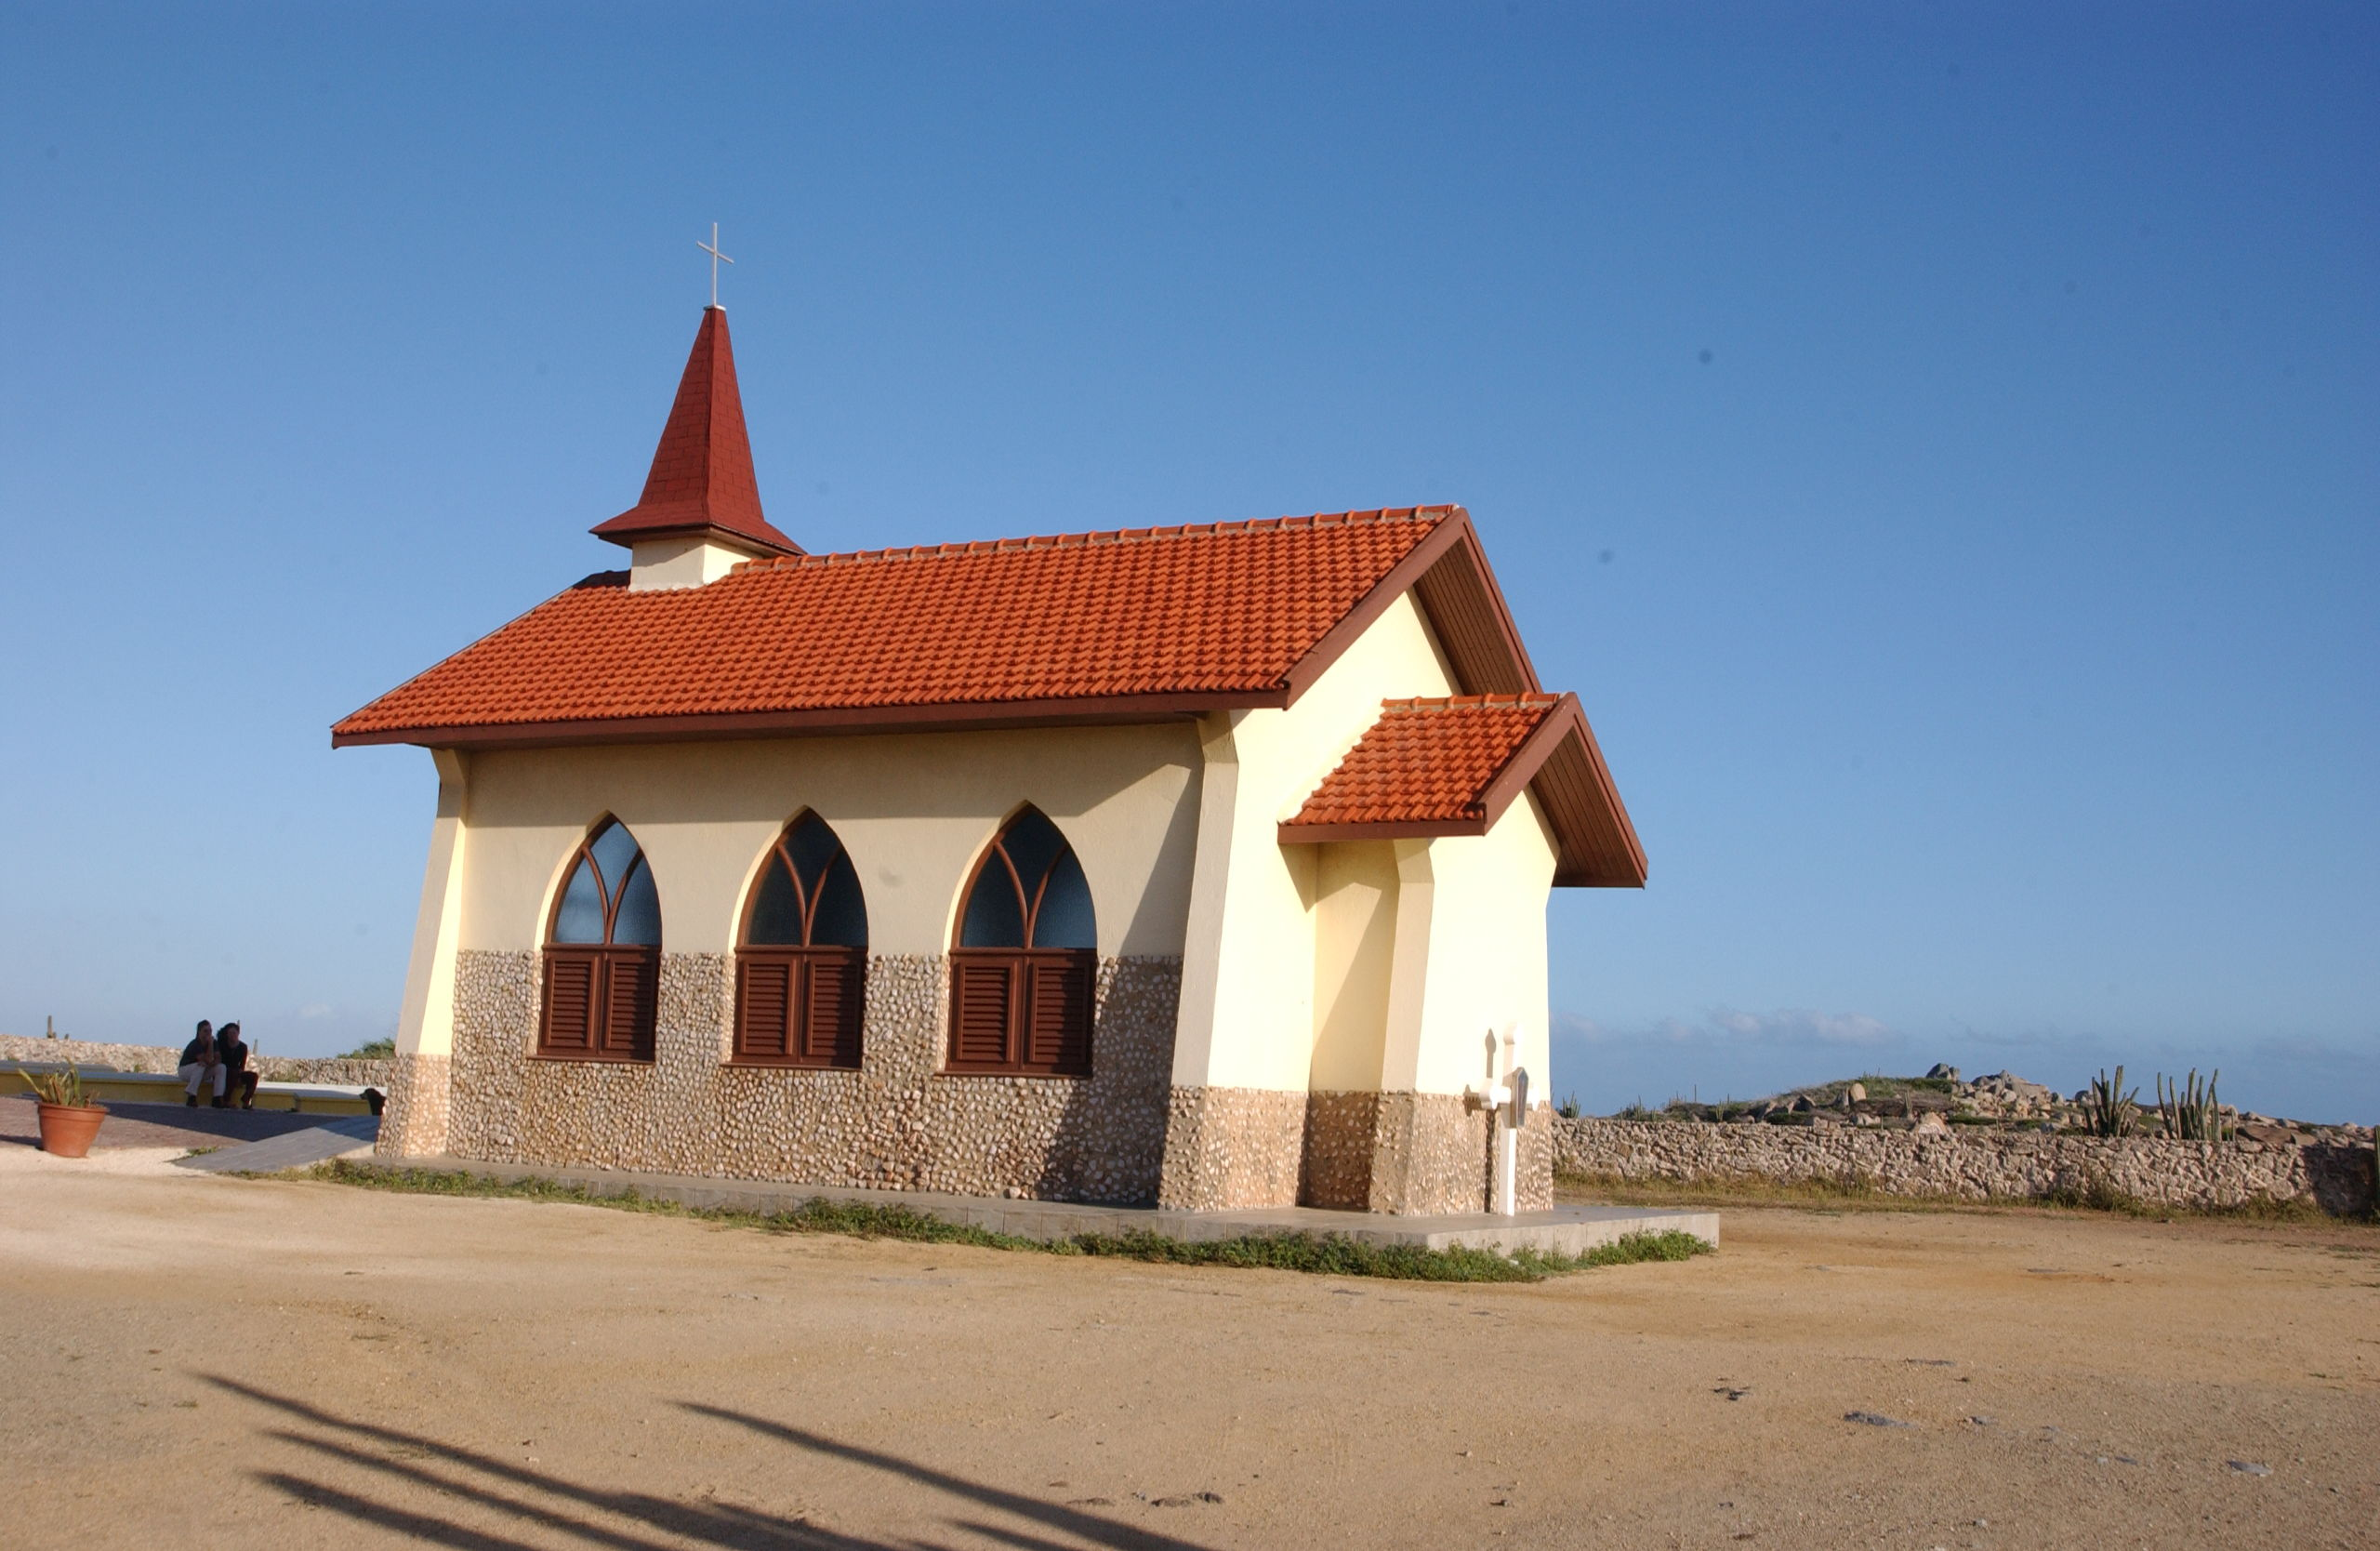 CHAPEL_OF_OUR_LADY_OF_ALTO_VISTA_-_ARUBA